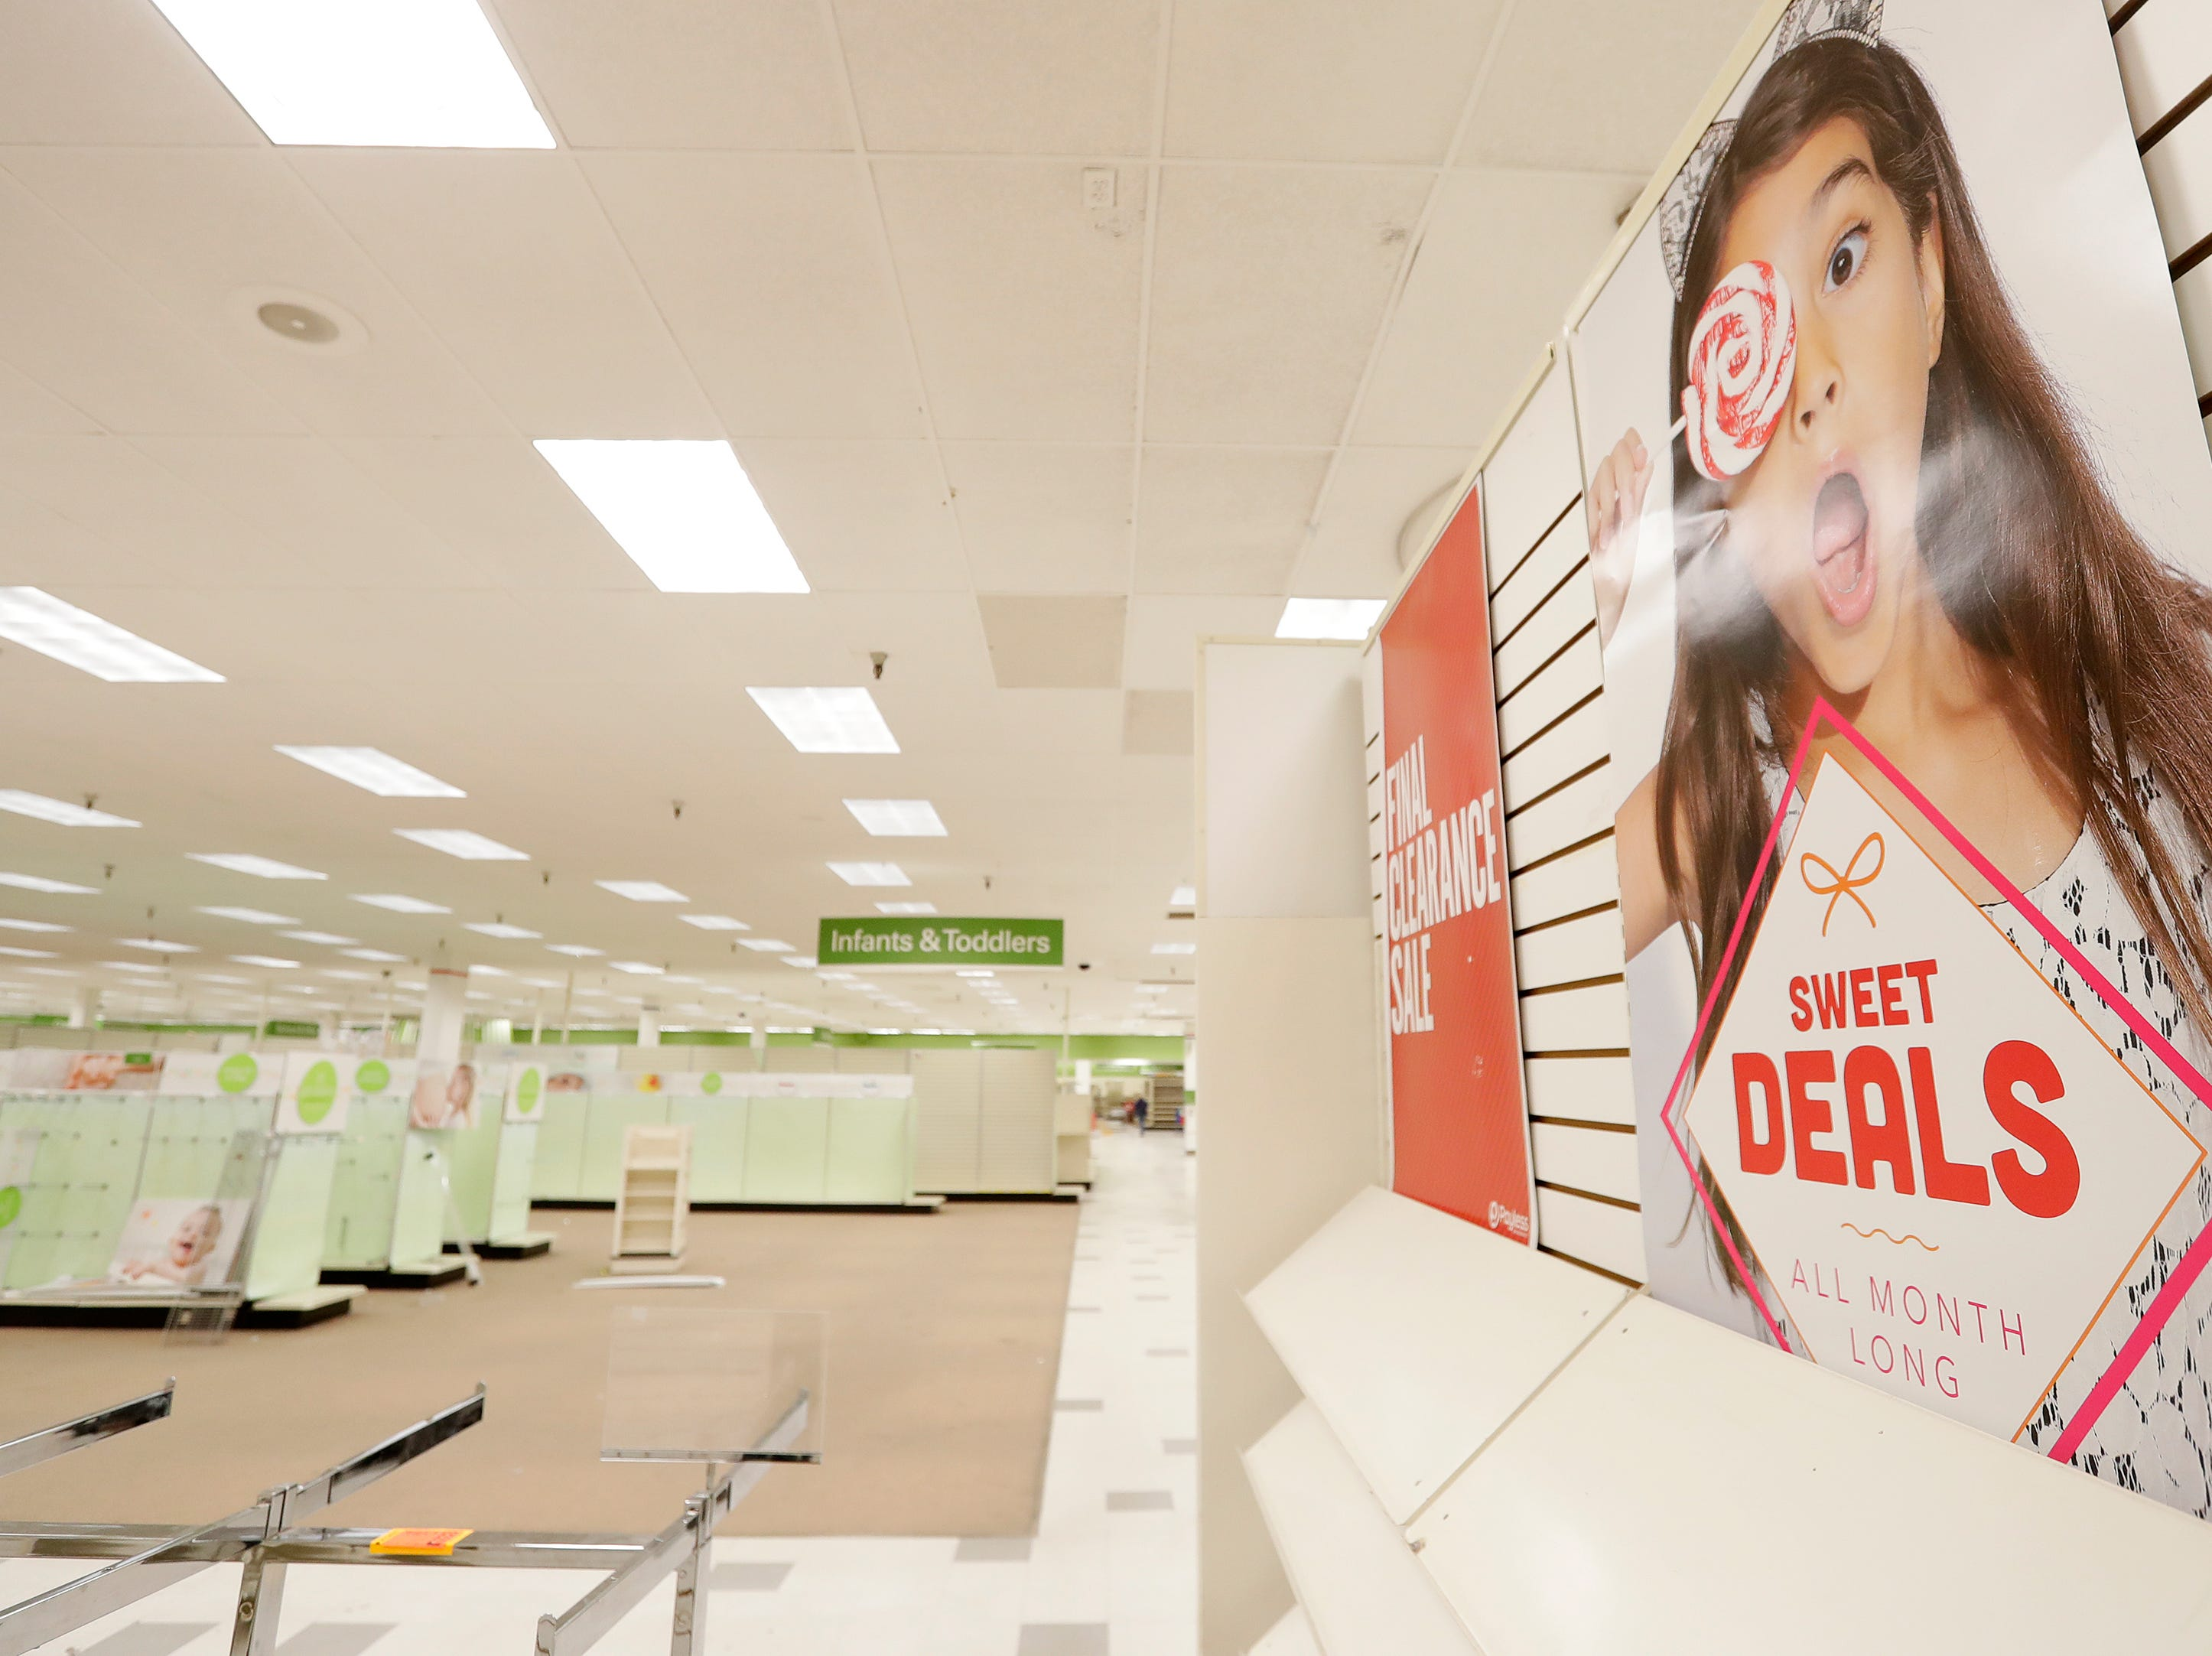 Empty shelves are shown on the final day of business at the Shopko on Military Ave on Monday, April 22, 2019 in Green Bay, Wis.